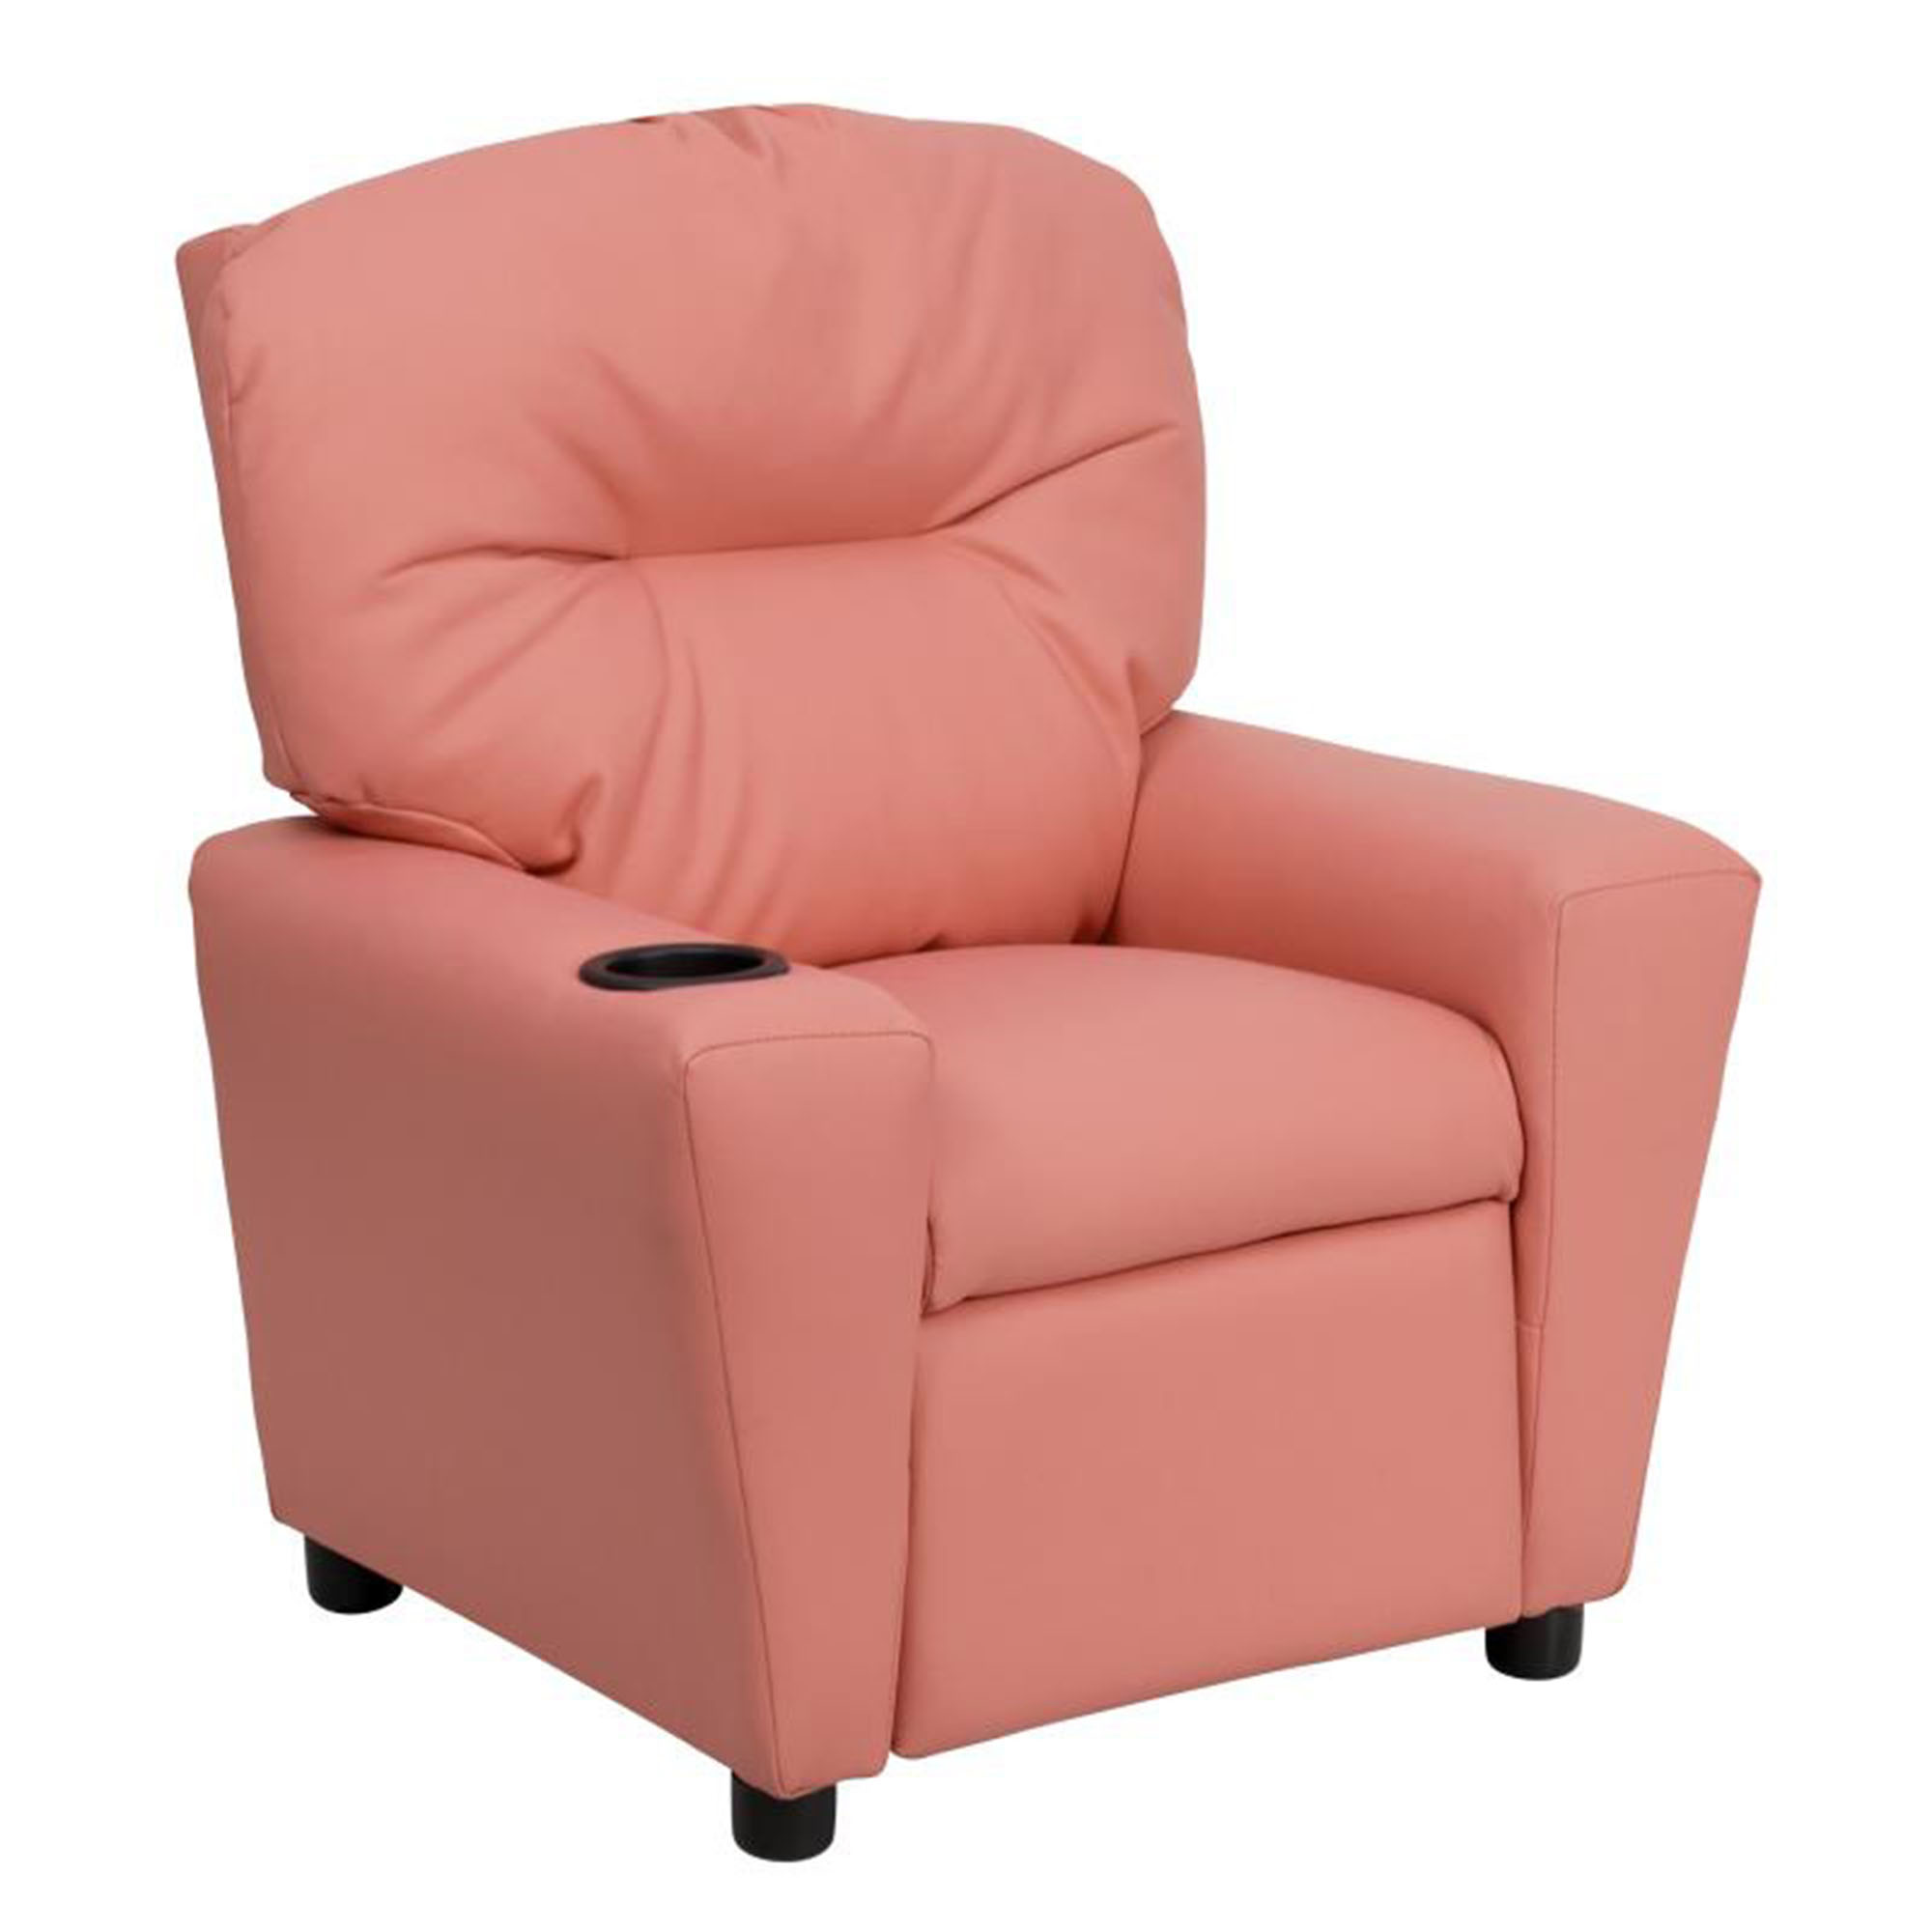 Offex Contemporary Pink Vinyl Kids Recliner with Cup Holder [BT-7950-KID-PINK-GG]